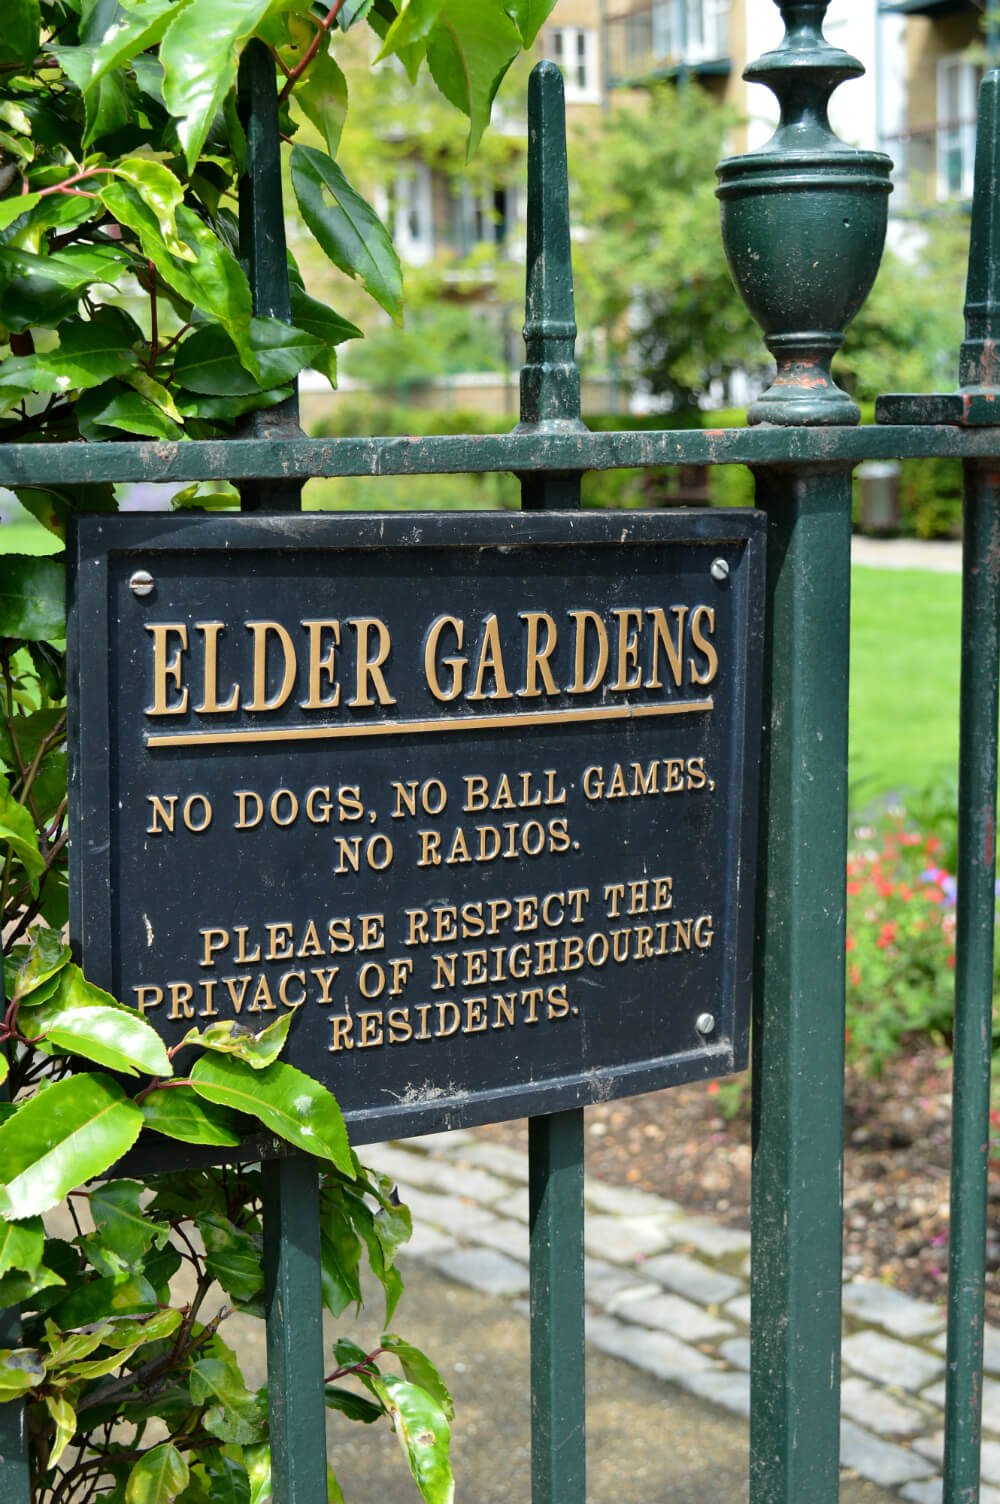 Elder Gardens in Spitalfields, London